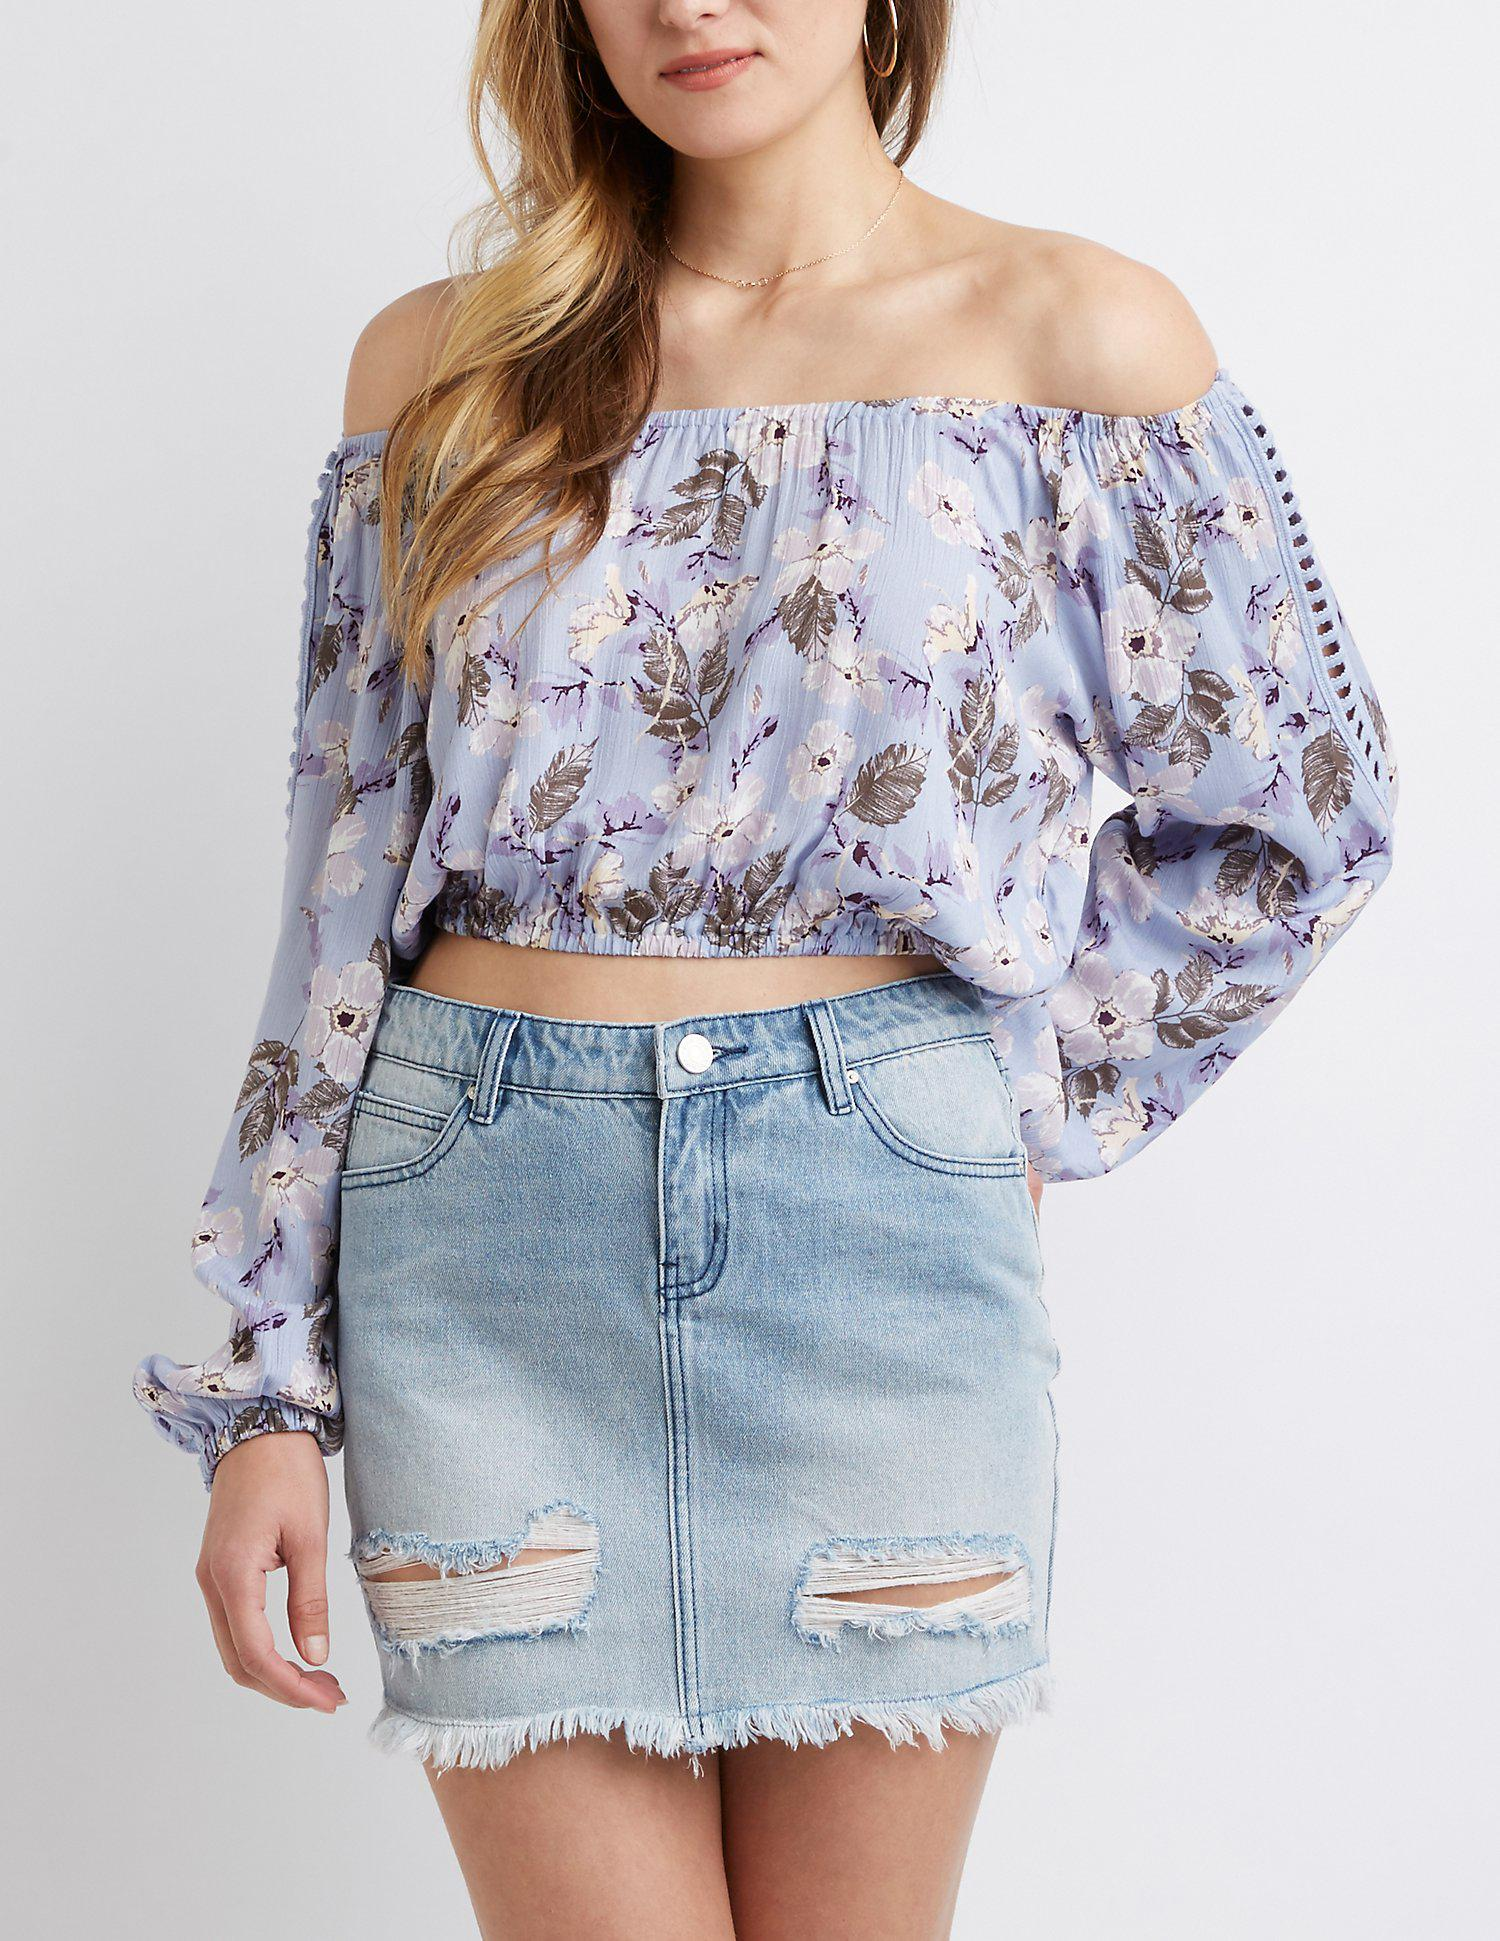 55cafa948dec3 Lyst - Charlotte Russe Floral Off The Shoulder Top in Blue